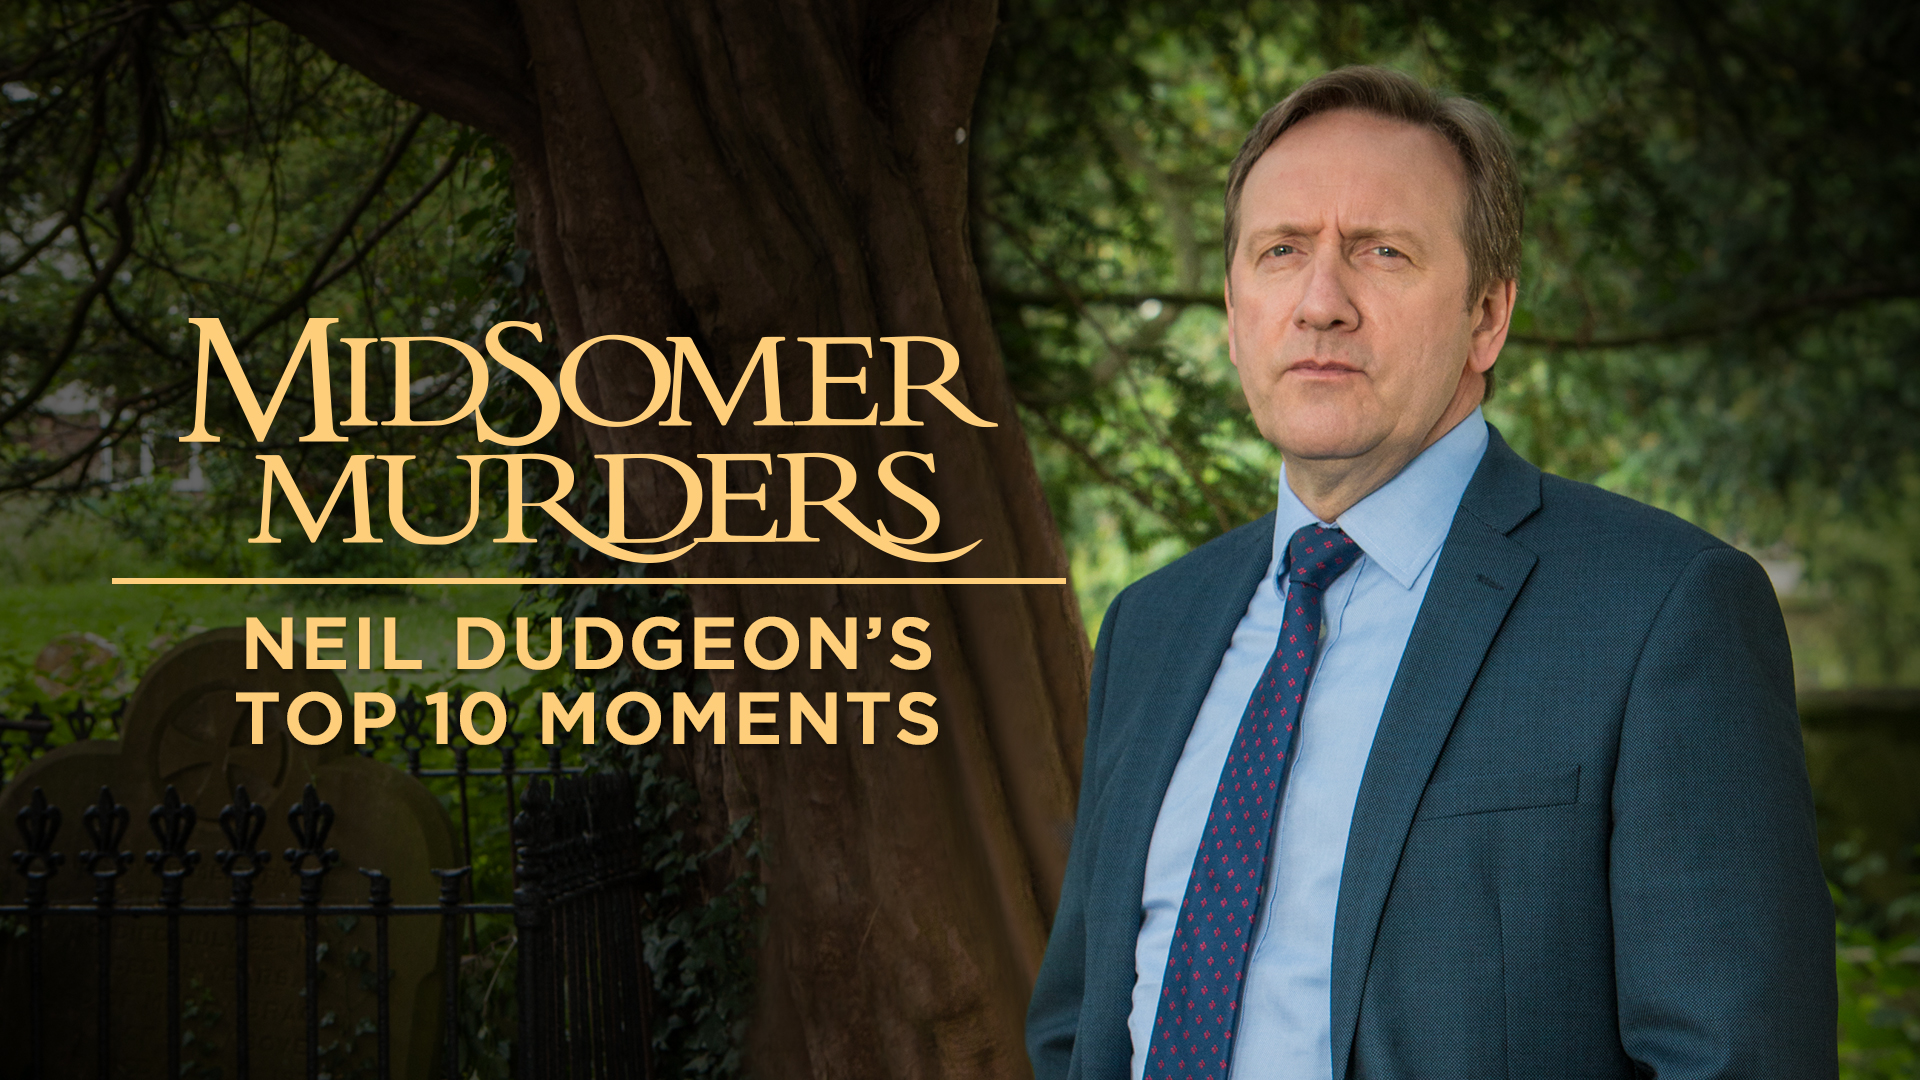 Midsomer Murders: Neil Dudgeon's Top 10